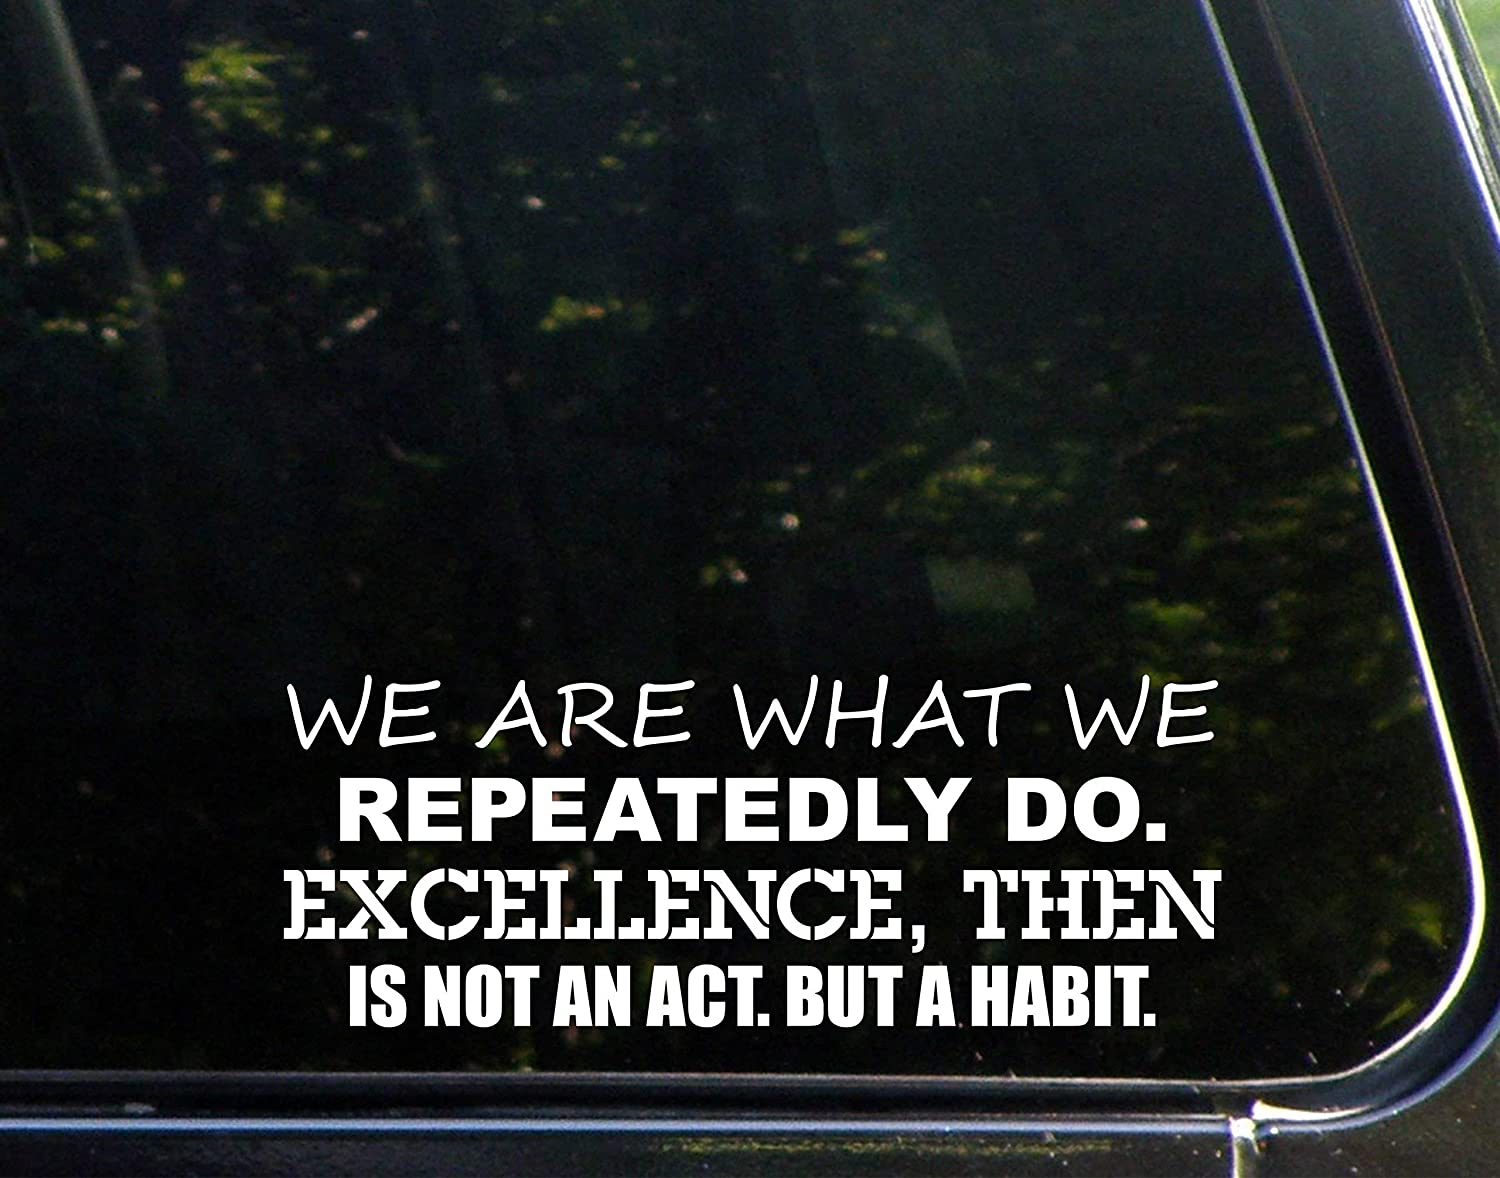 "Diamond Graphics We are What We Repeatedly Do. Excellence, Then is Not an Act. But A Habit. (8-3/4"" X 3-1/4"") Die Cut Decal Bumper Sticker for Windows, Cars, Trucks, Laptops, Etc"